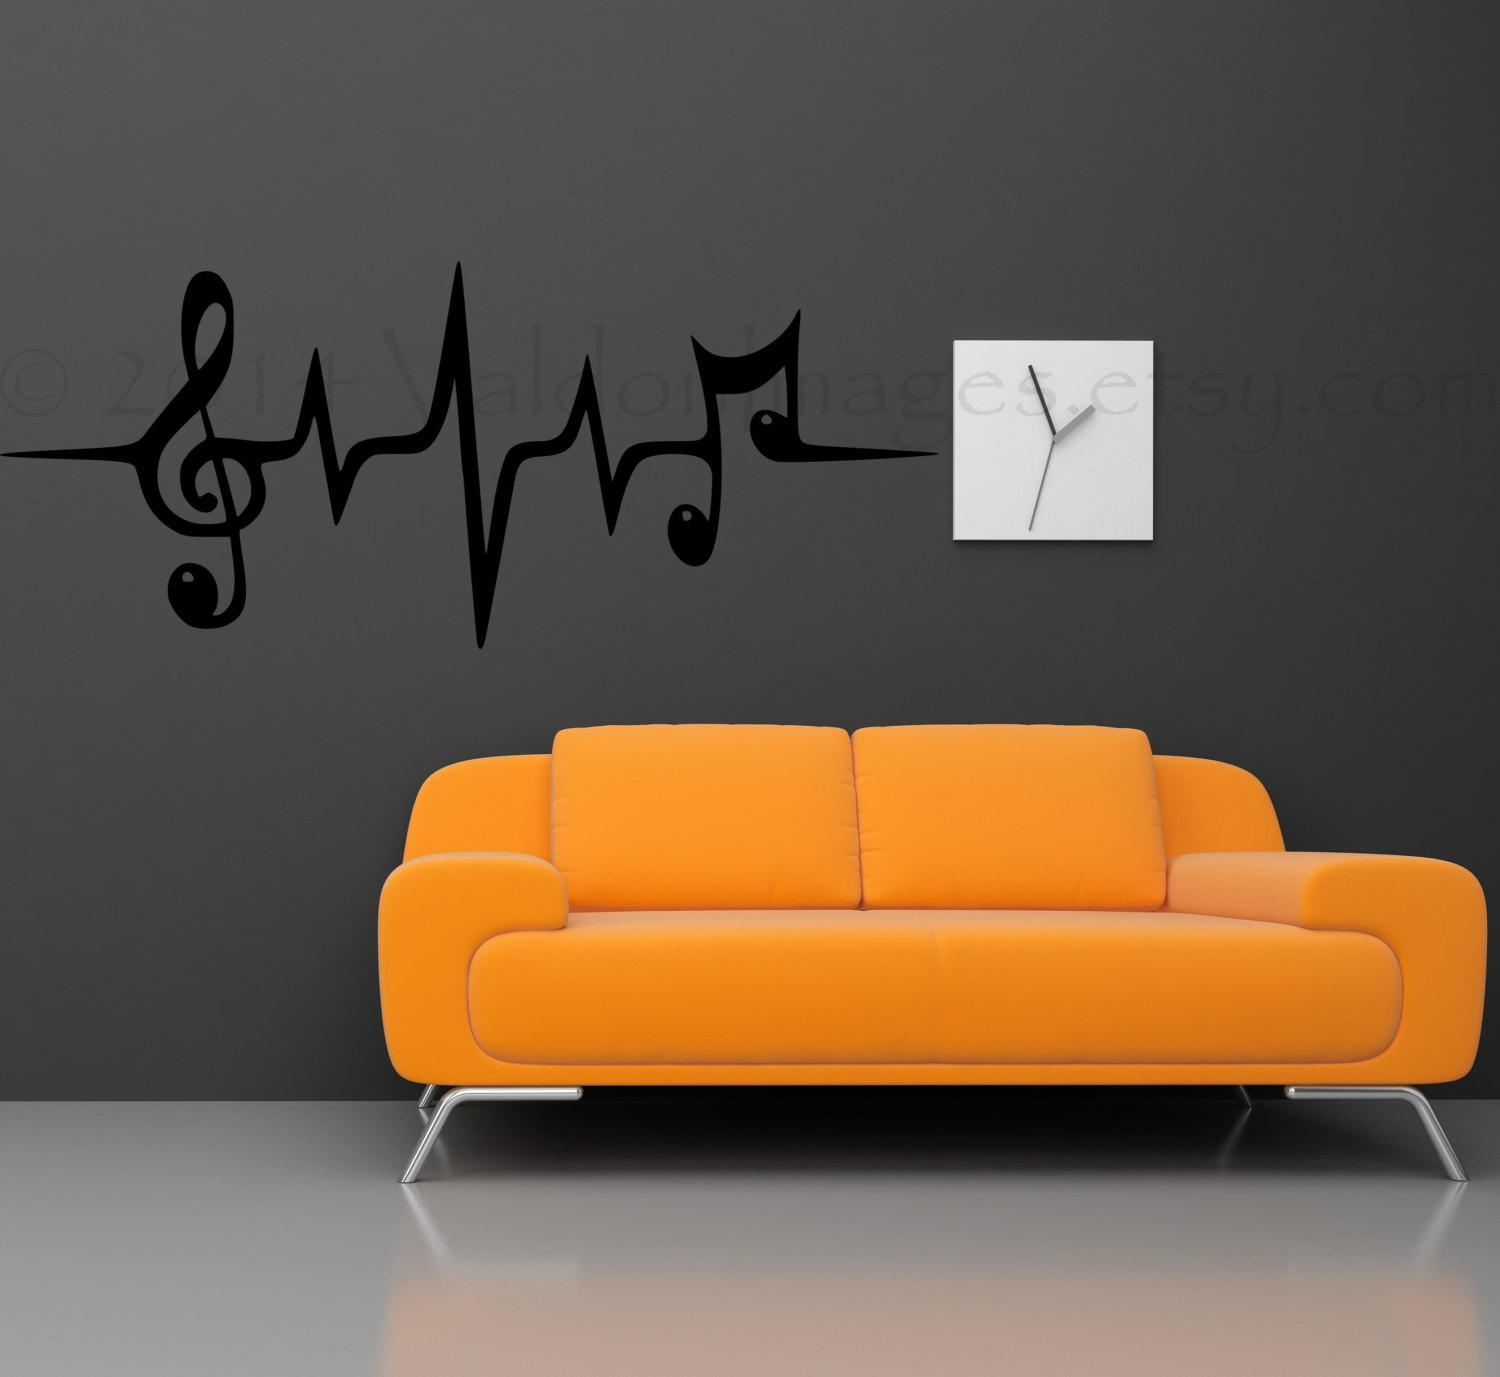 Music Note Wall Decal Music Wall Decal Heartbeat Wall Within Music Note Wall Art (Image 7 of 20)